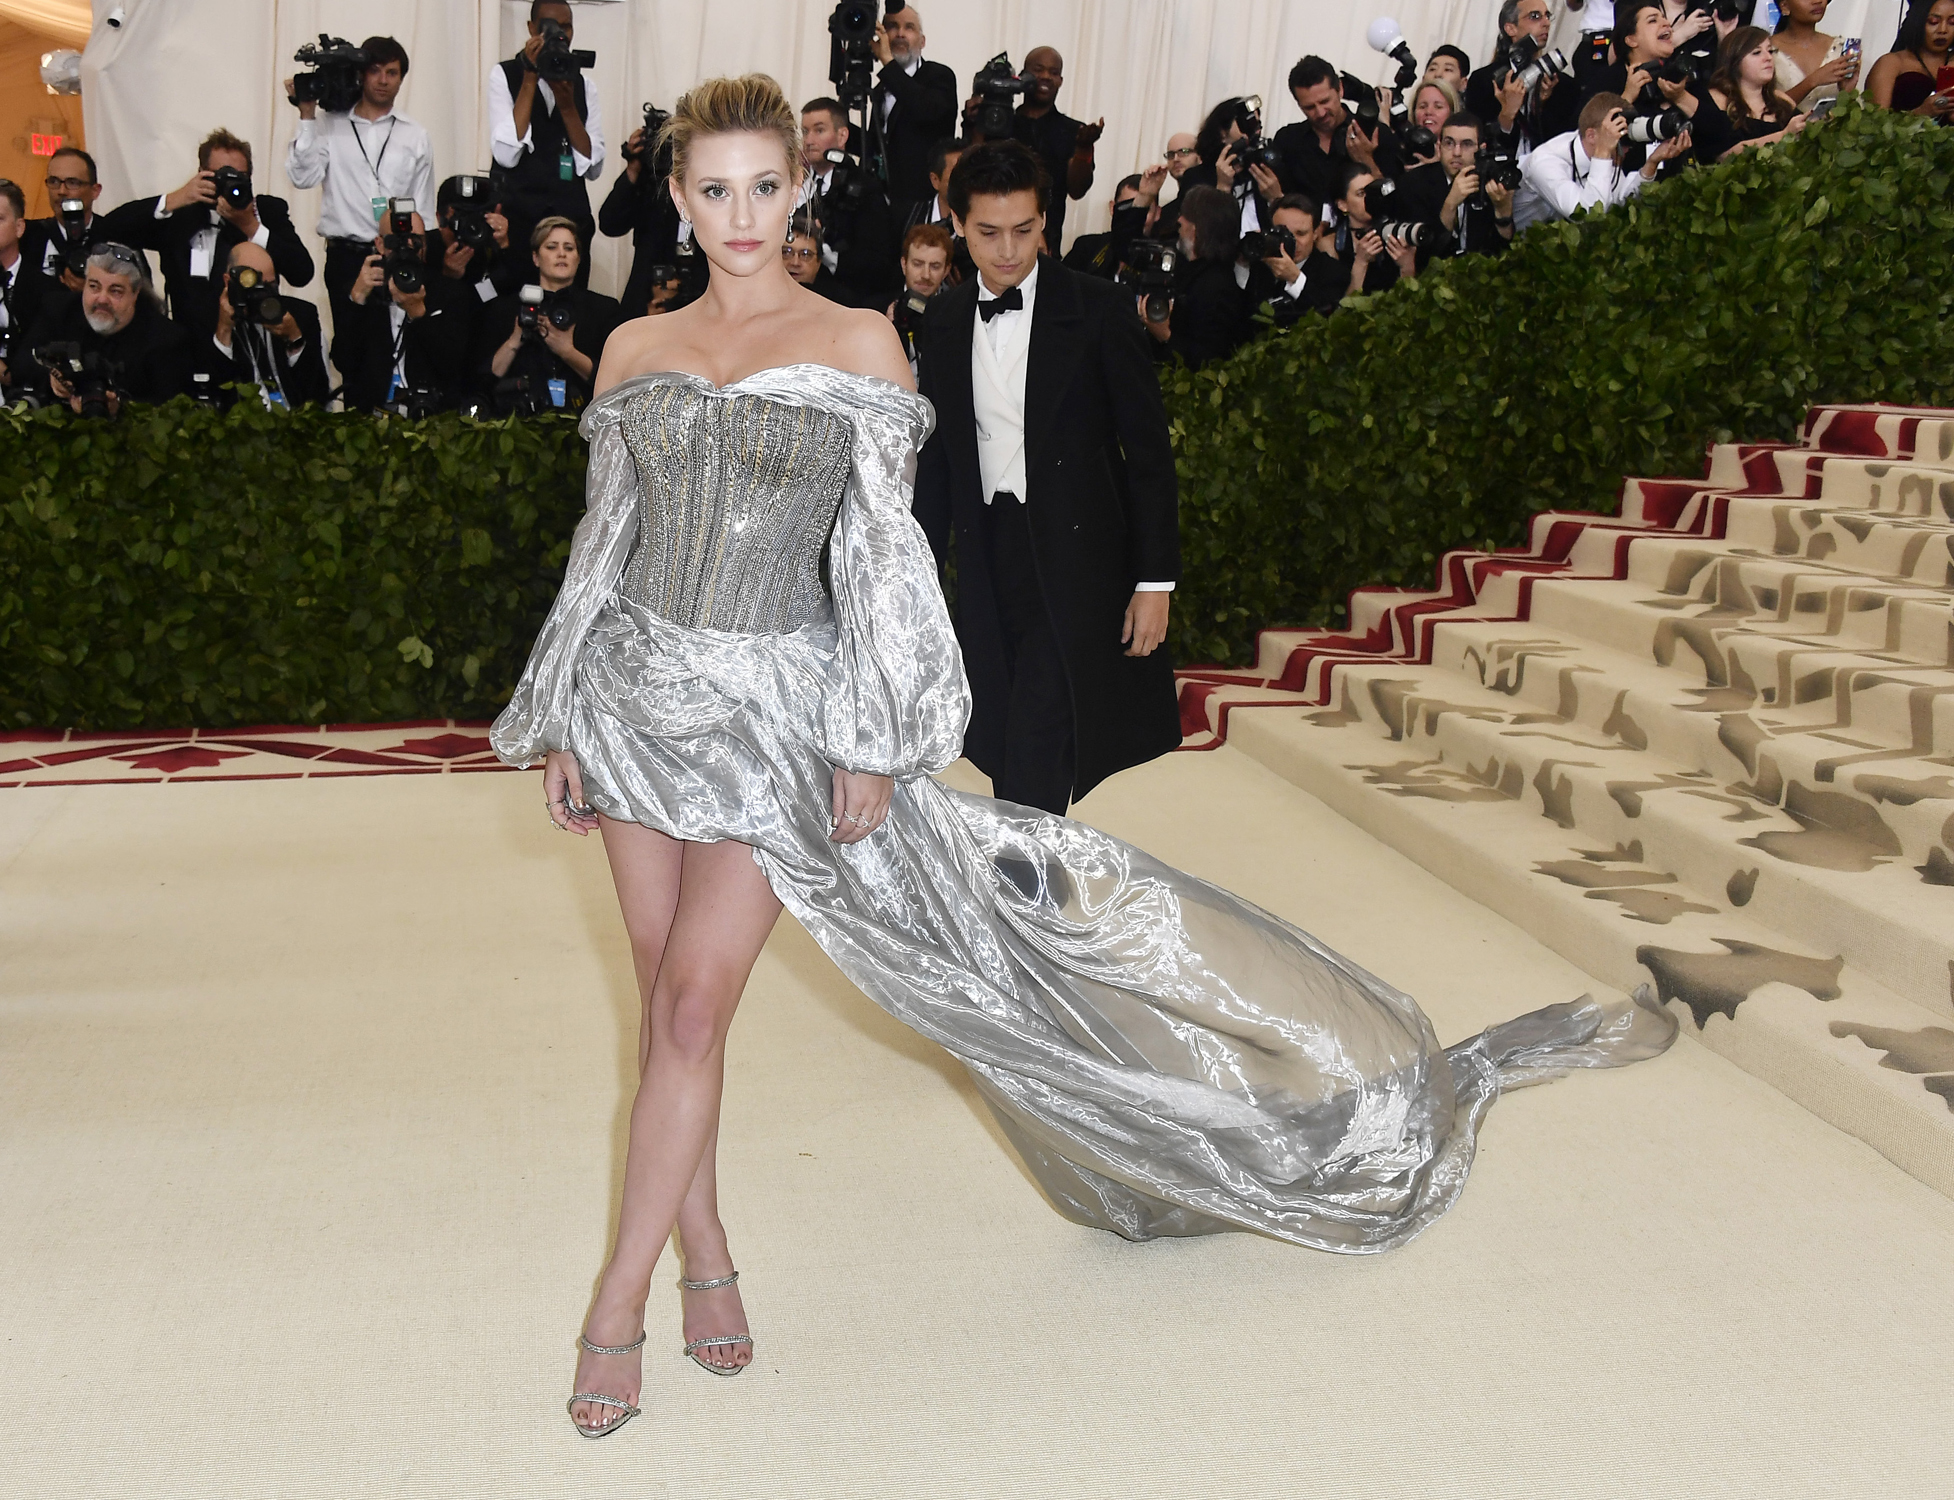 NEW YORK, NY - MAY 07:  Lili Reinhart attends the Heavenly Bodies: Fashion & The Catholic Imagination Costume Institute Gala at The Metropolitan Museum of Art on May 7, 2018 in New York City.  (Photo by Frazer Harrison/FilmMagic)